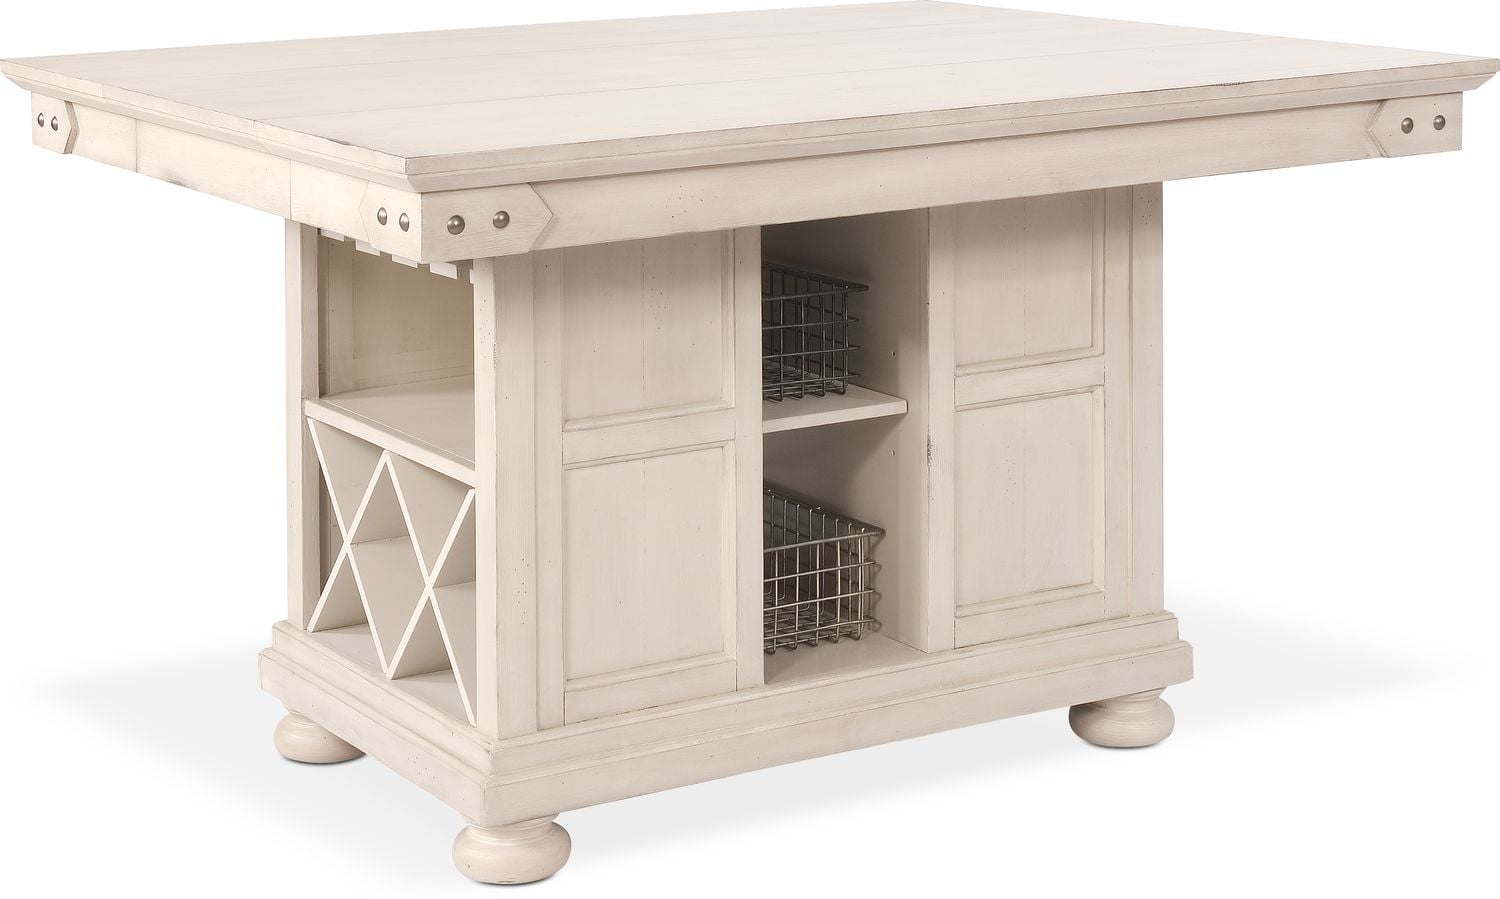 Dining Room Furniture - New Haven Kitchen Island